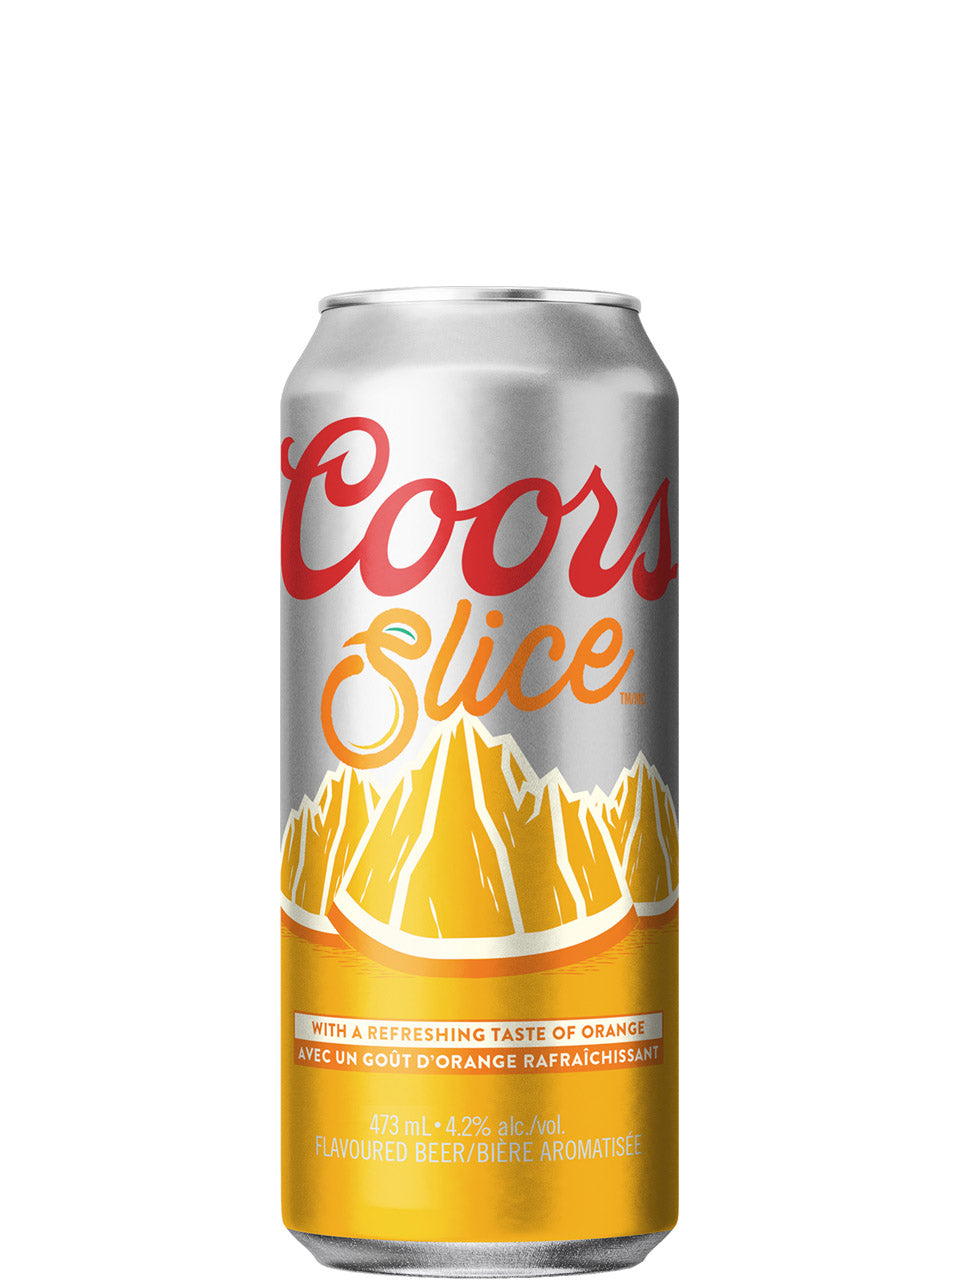 COORS SLICE TALL CAN